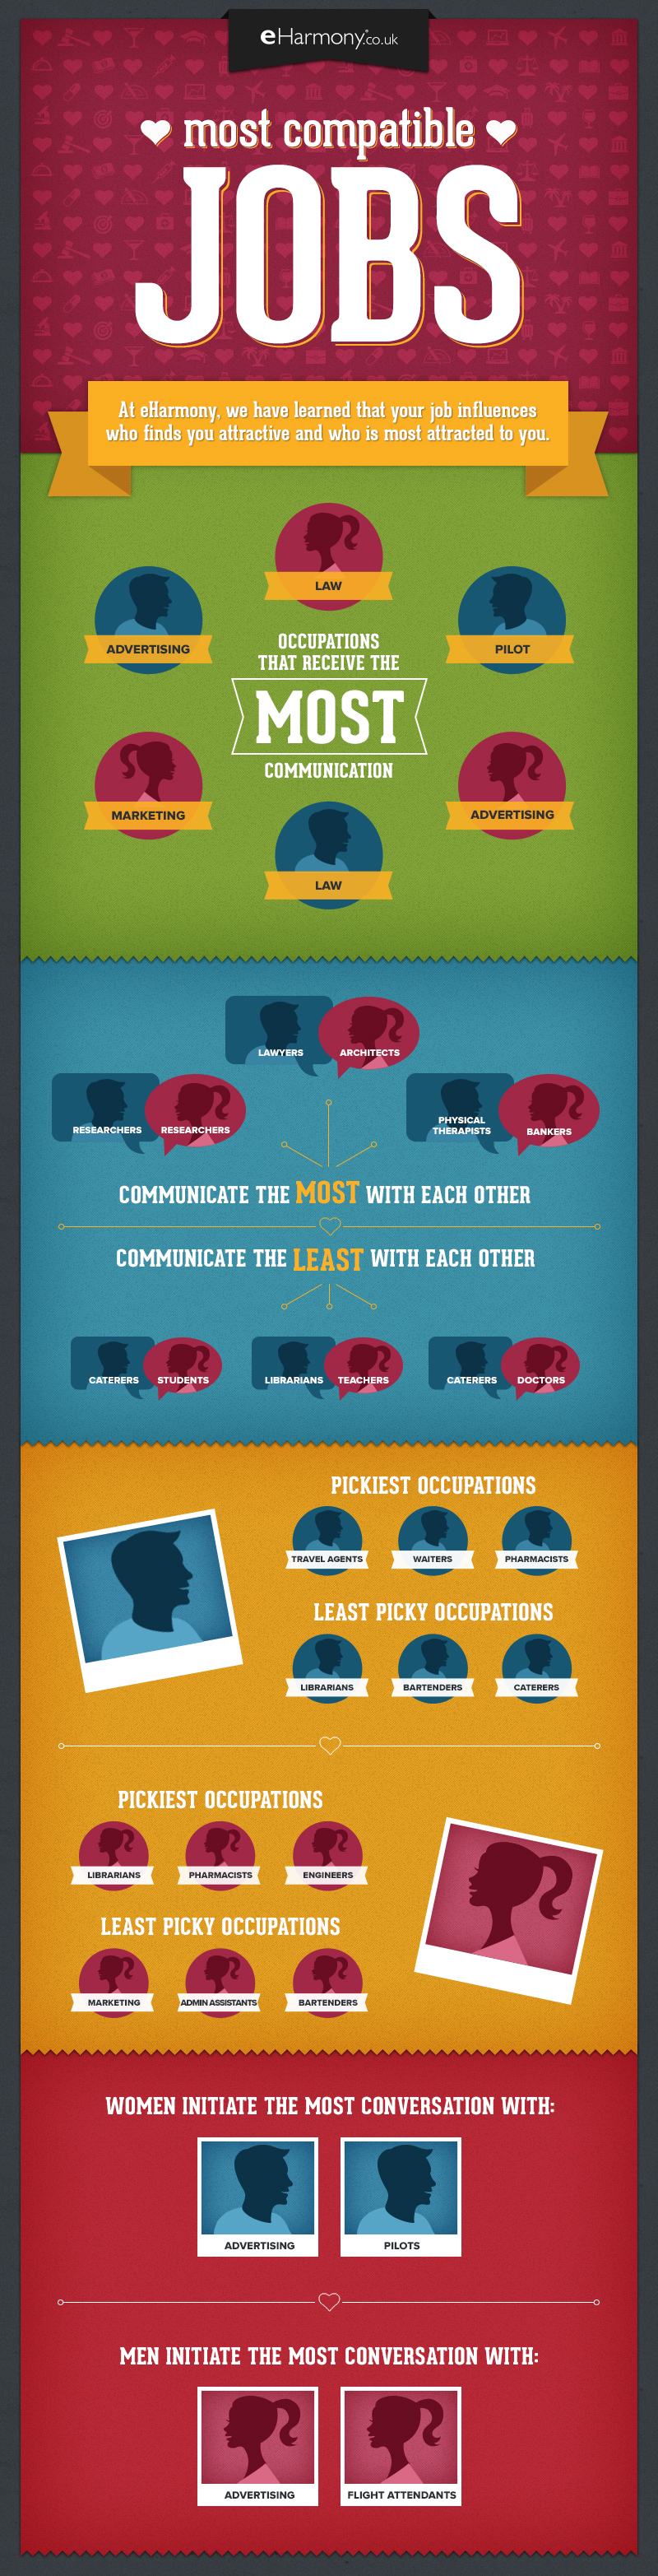 What jobs are the most compatible? | Job, Visual